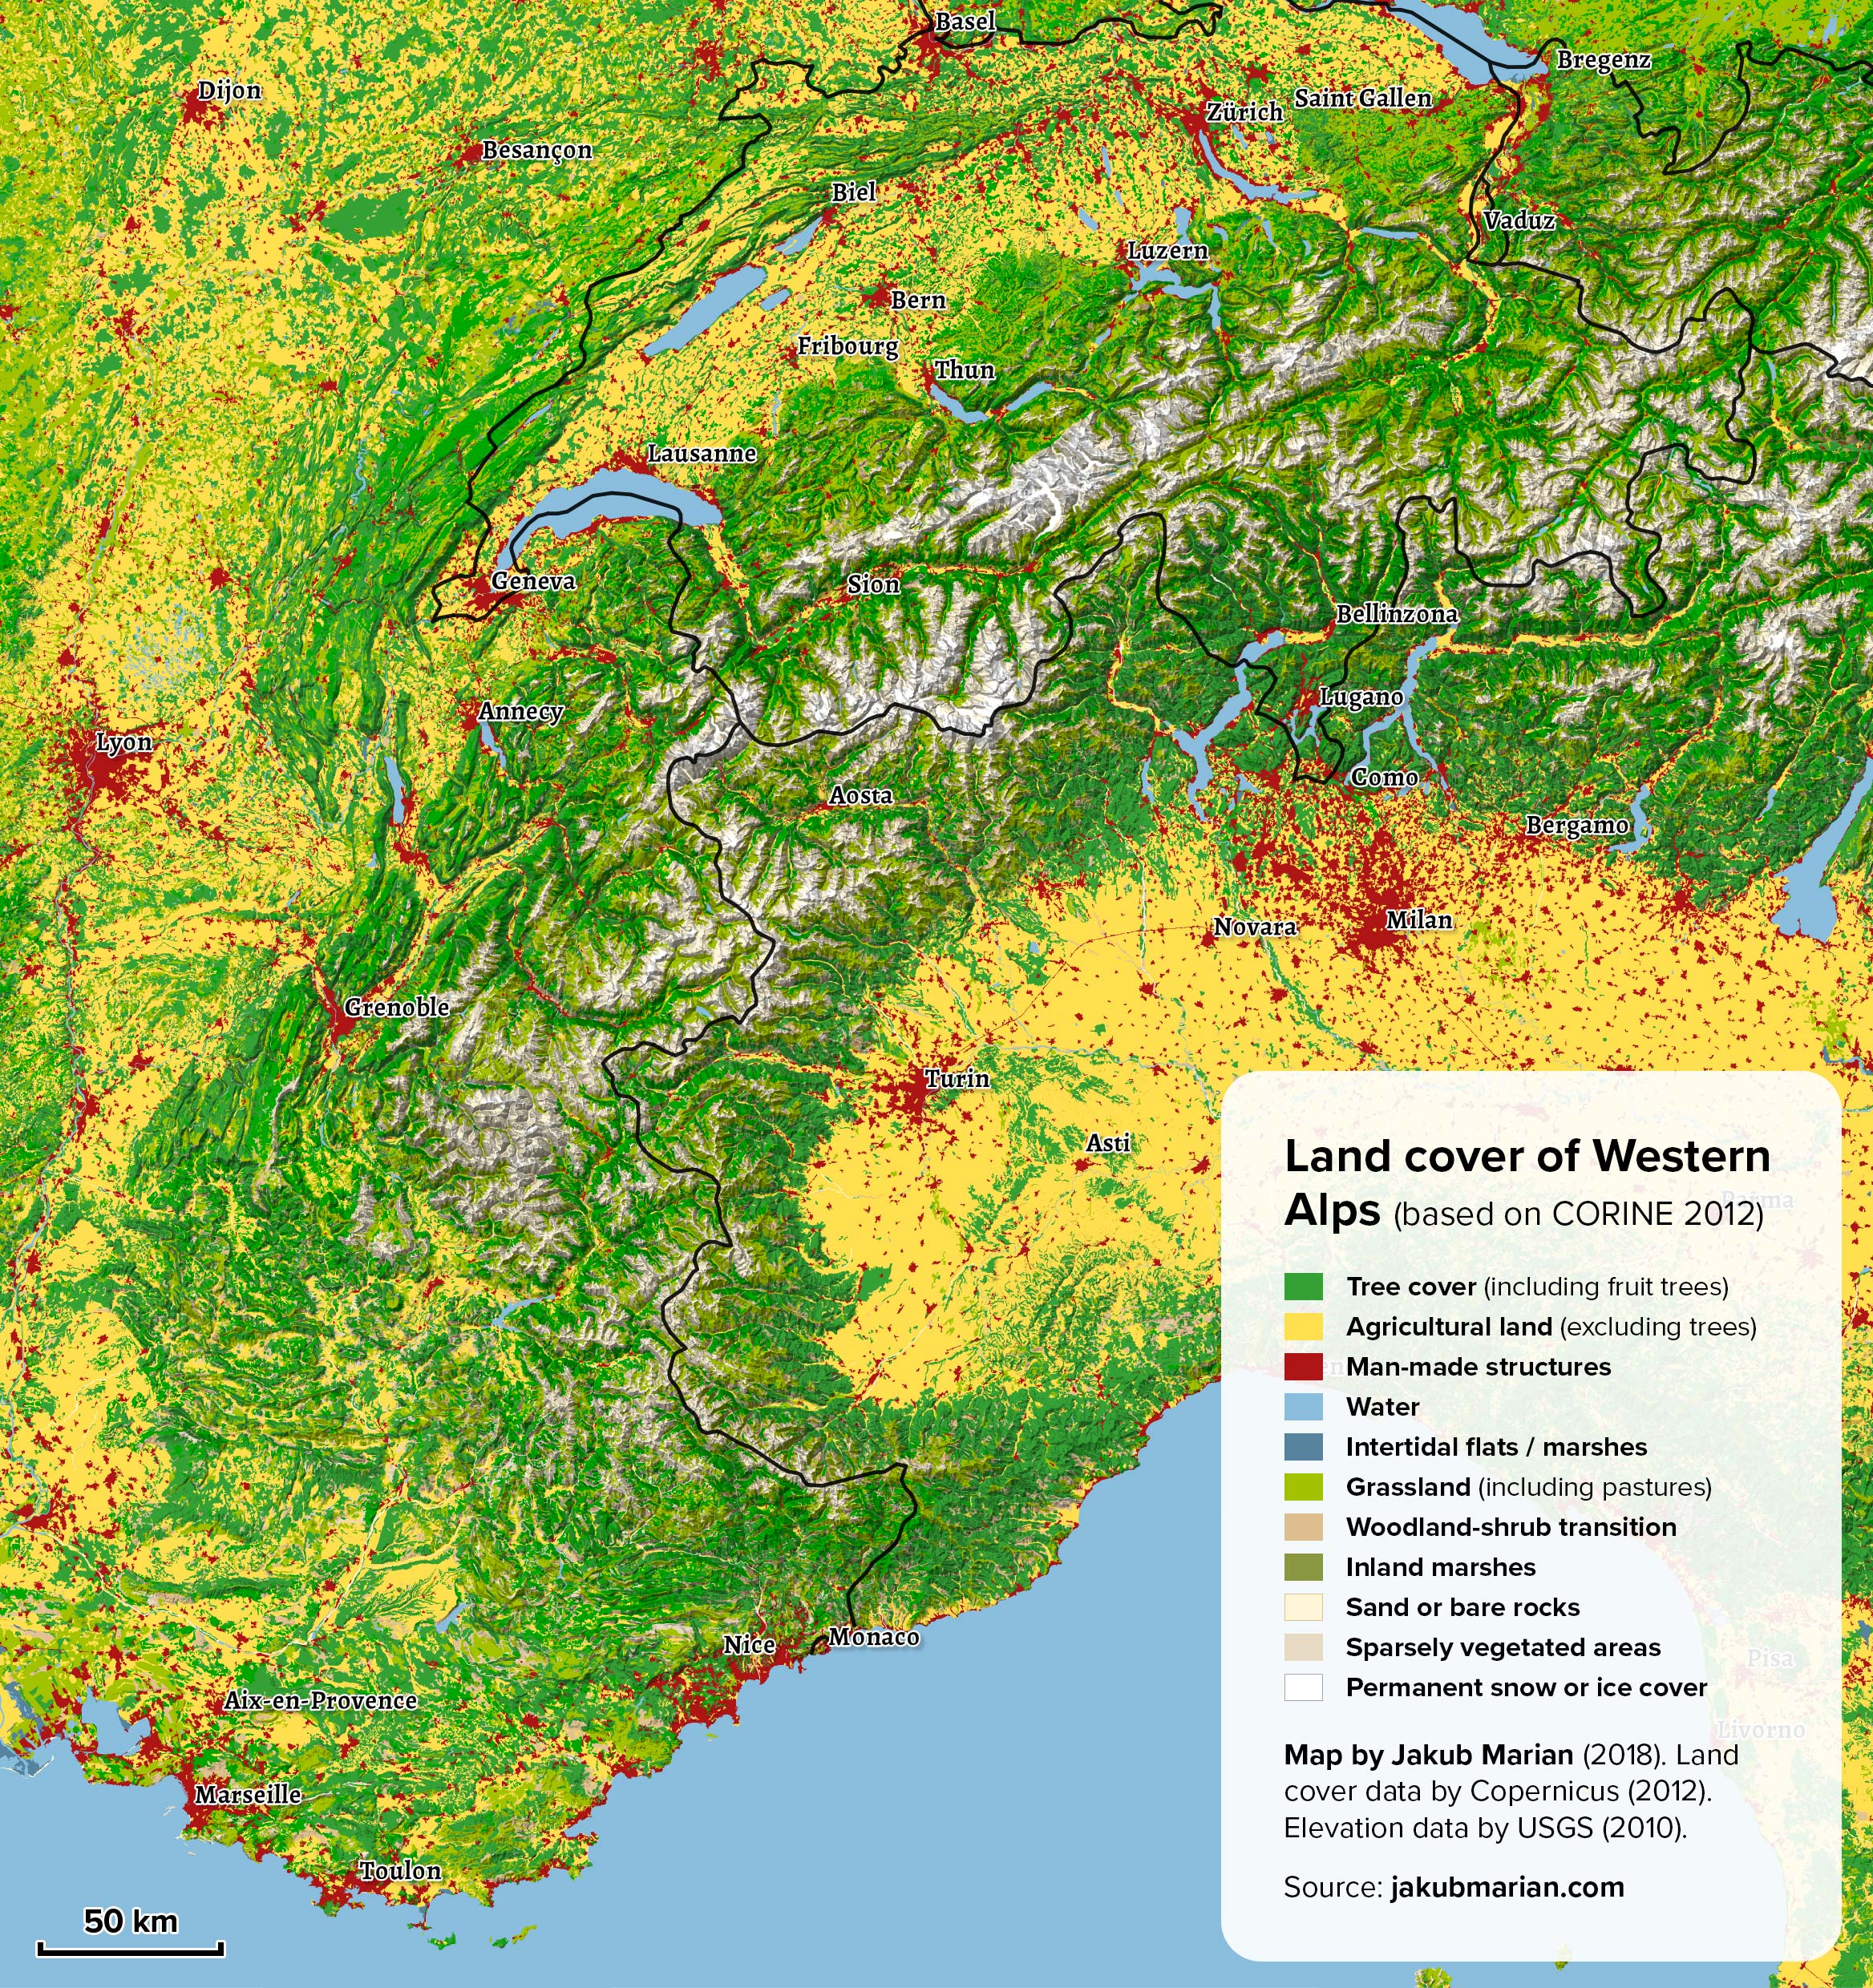 Land cover of Western Alps